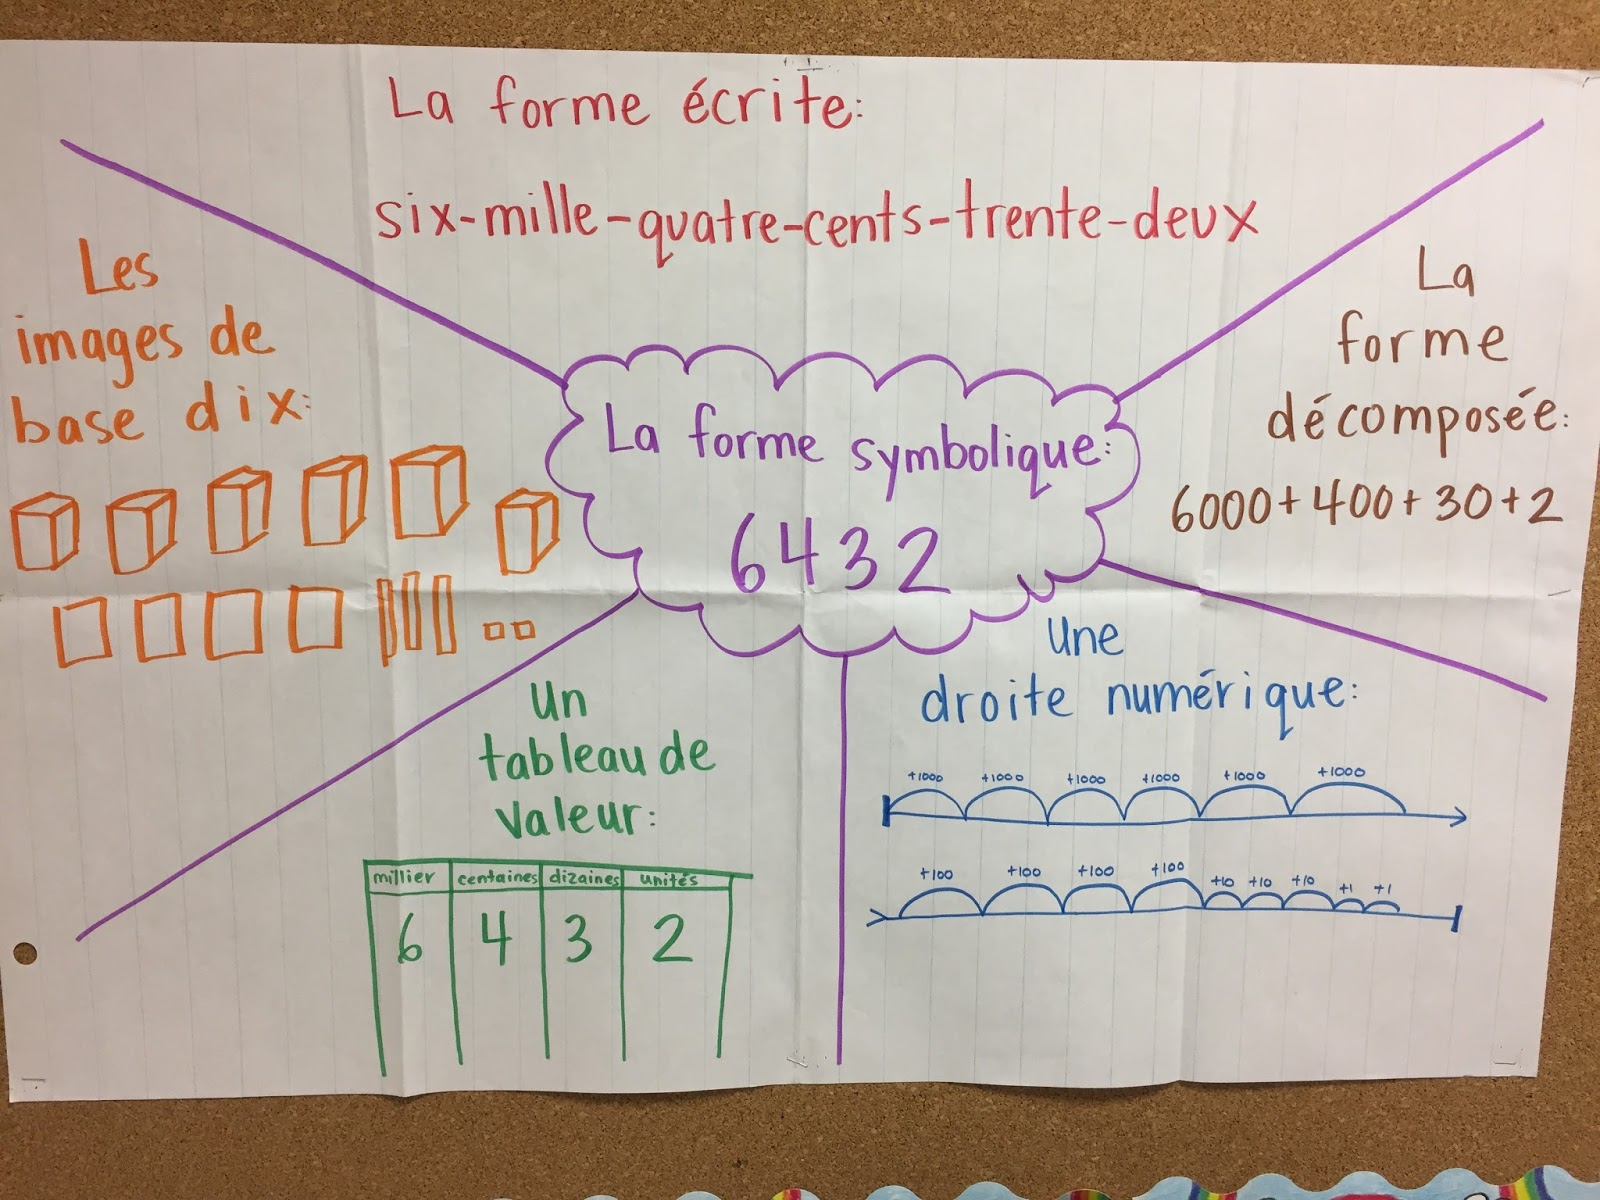 Room 25 with mme mcallister math whole numbers to 10000 la forme dcompose expanded form 1342 1000200402 la forme symbolique standard form tableau de valeur place value chart arrondir rounding nvjuhfo Gallery